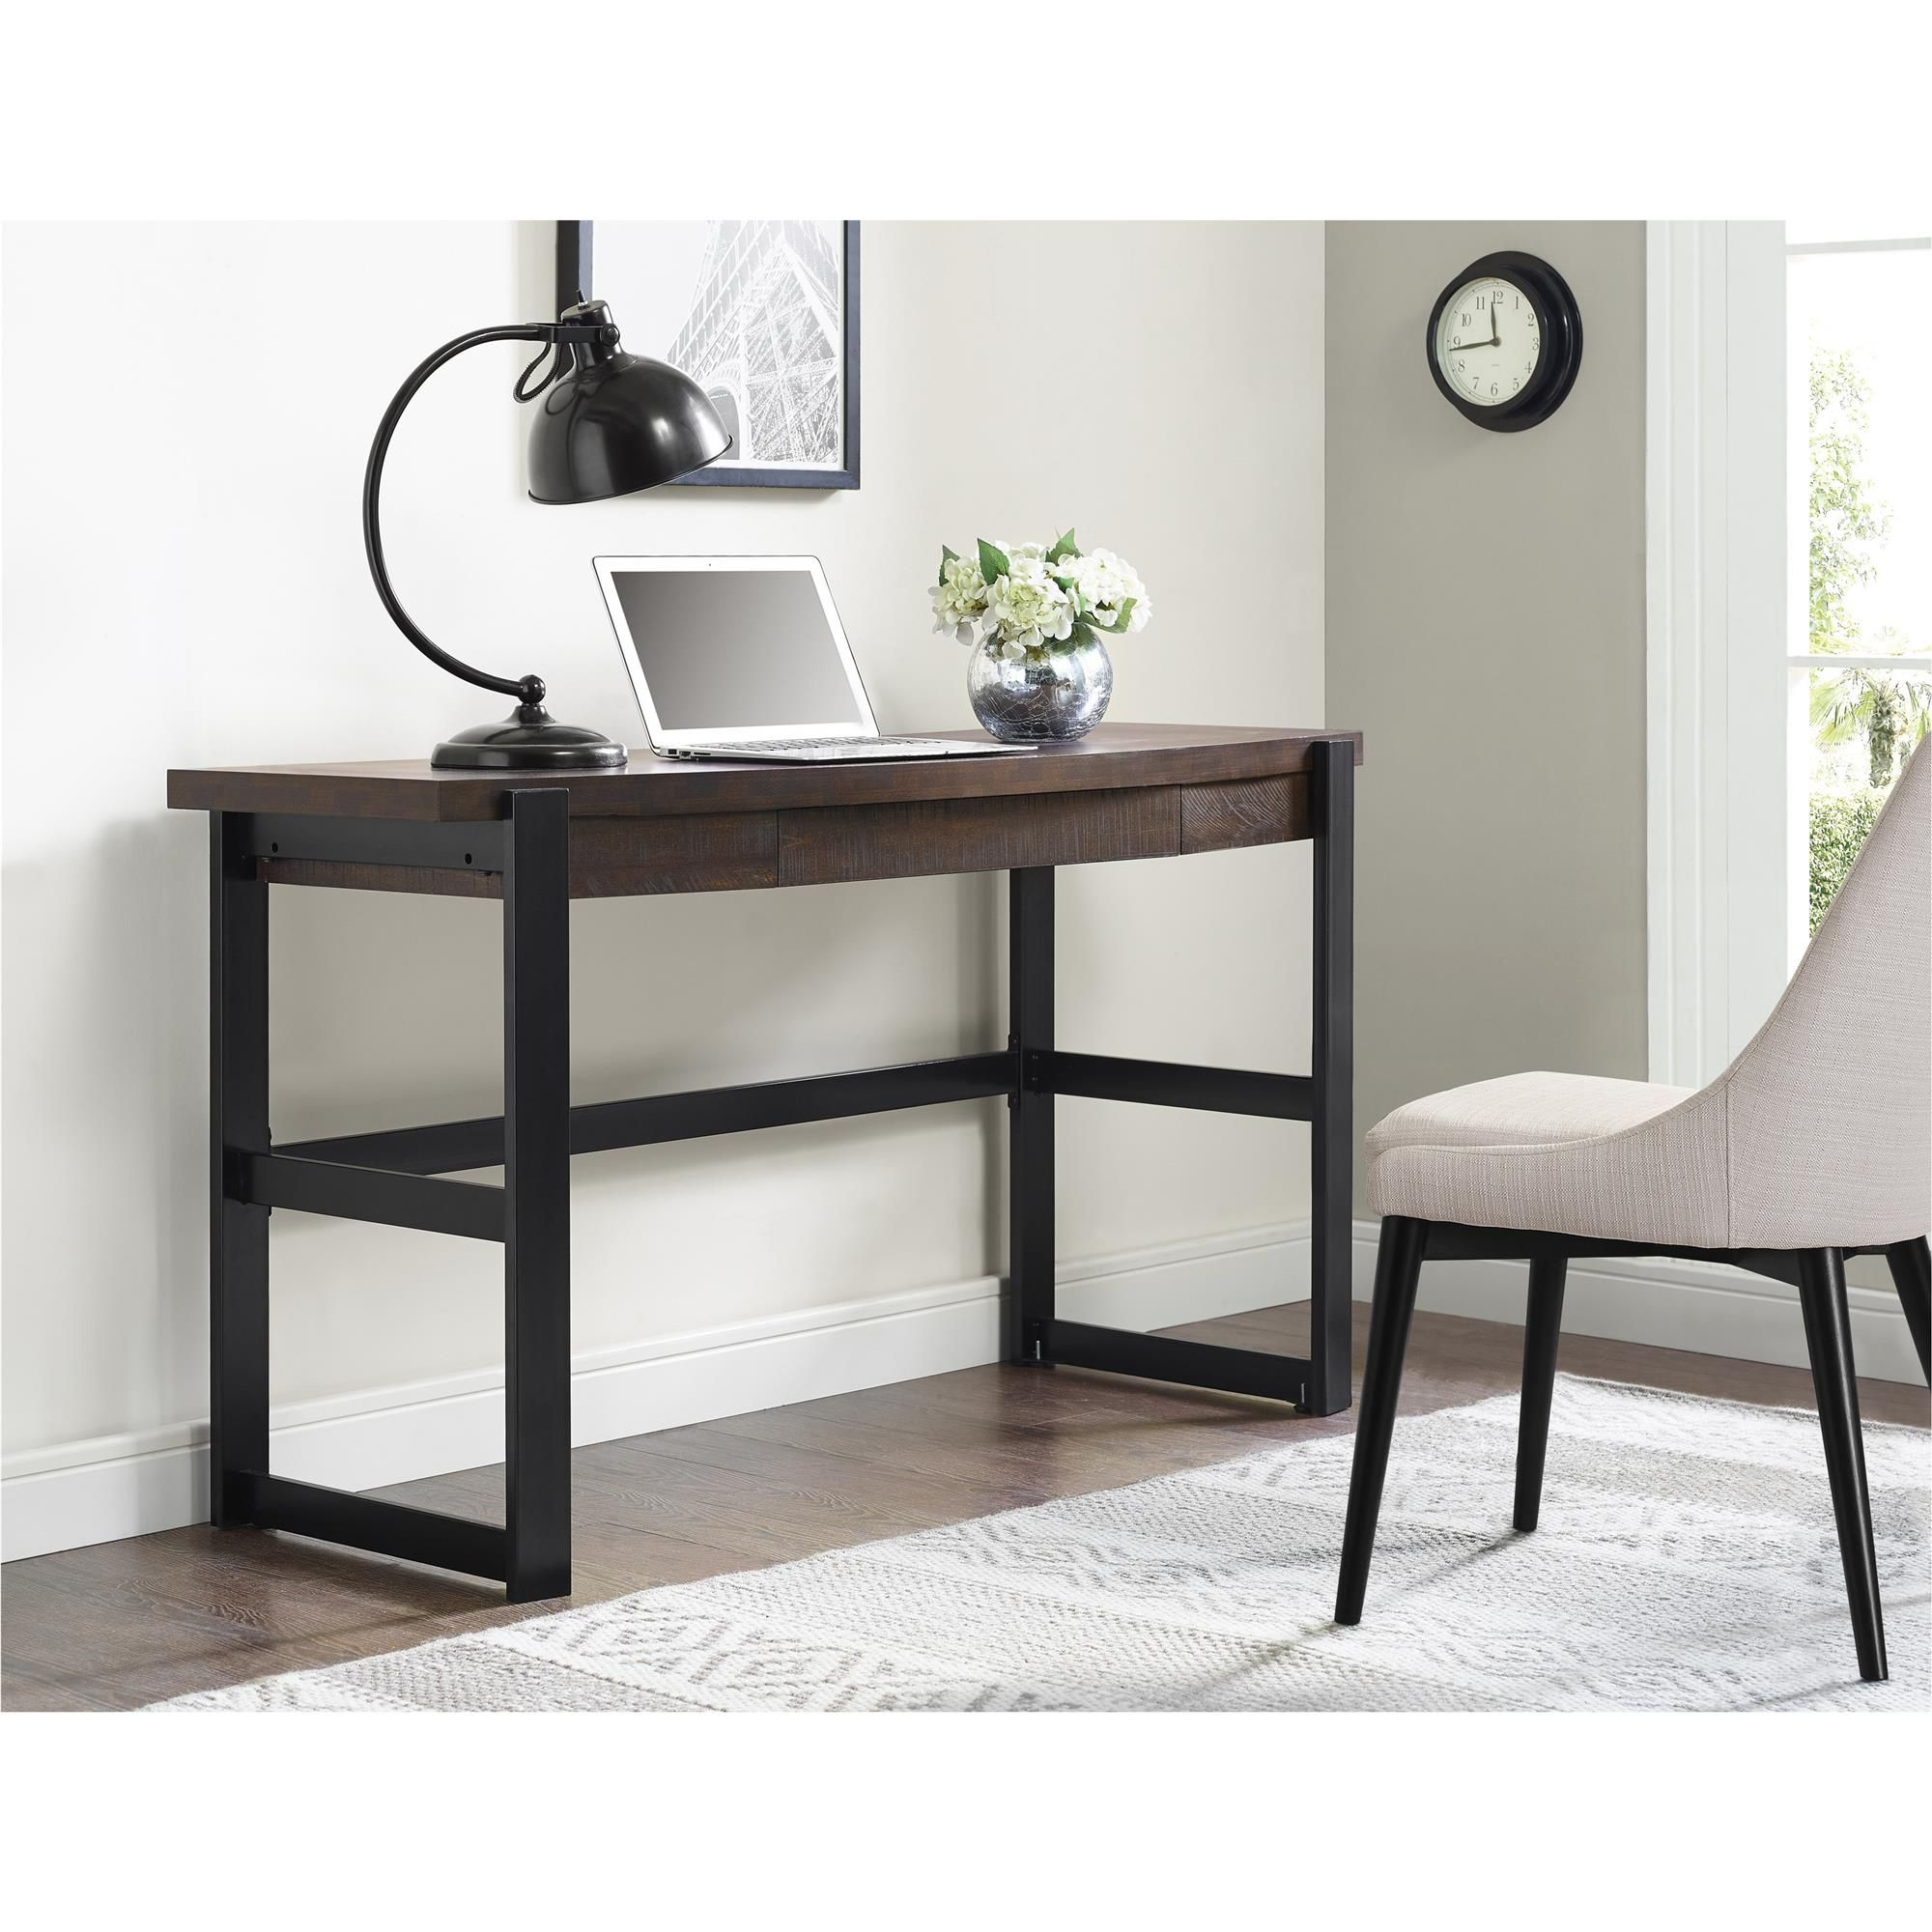 The Castling Desk Is Perfect Option For Both Large And Small Home Offices This Medium Sized Stylish Functional